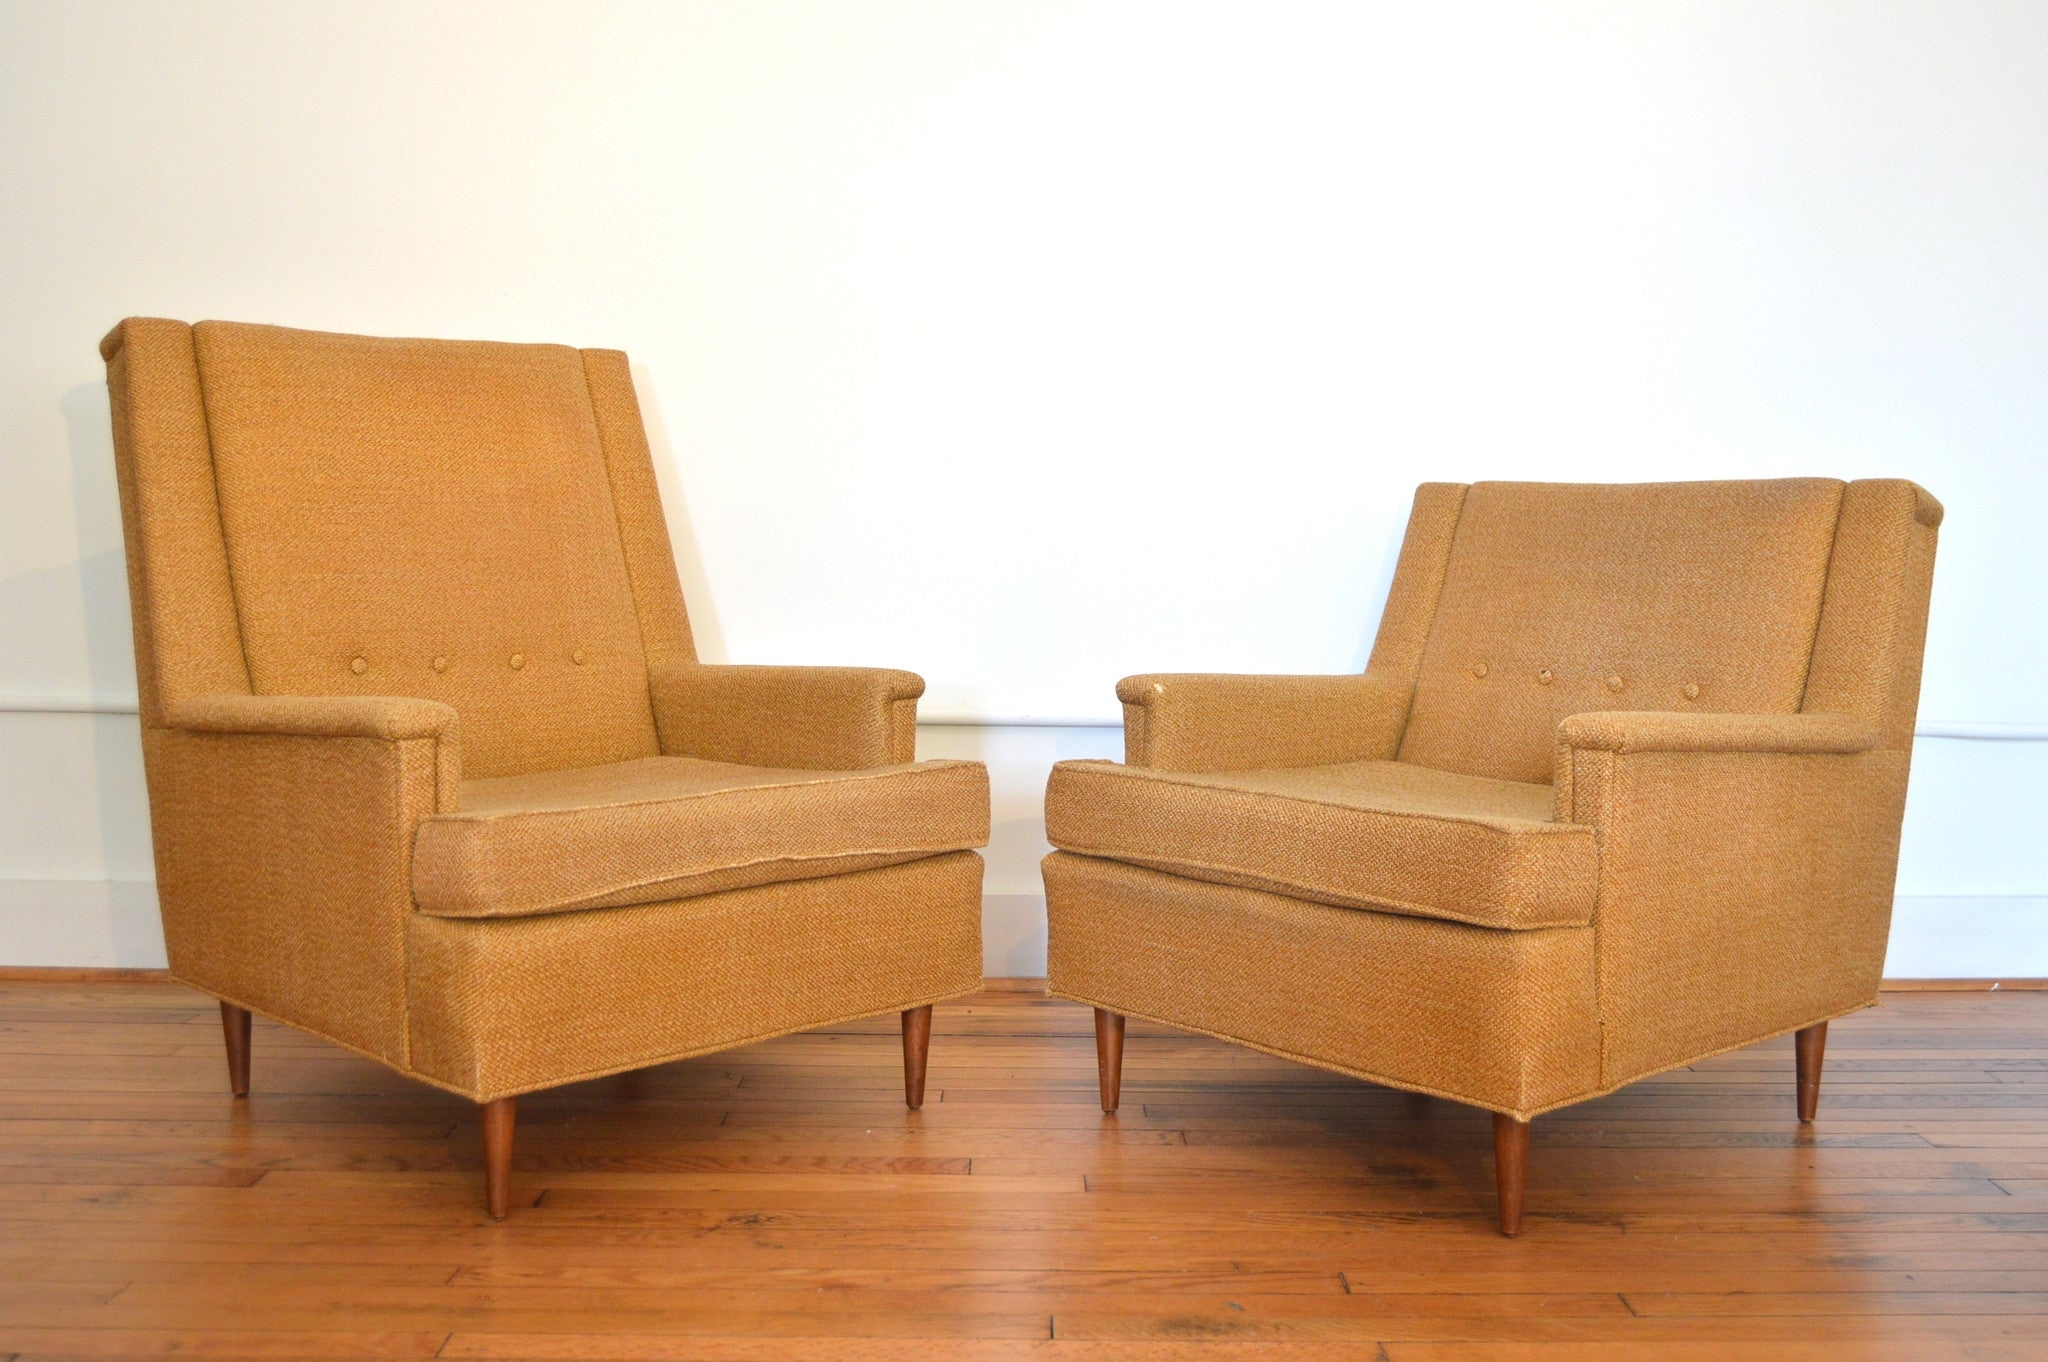 King And Queen Arm Chairs In The Style Of Milo Baughman   Danish Modern, Mid  Century Modern Lounge Chairs